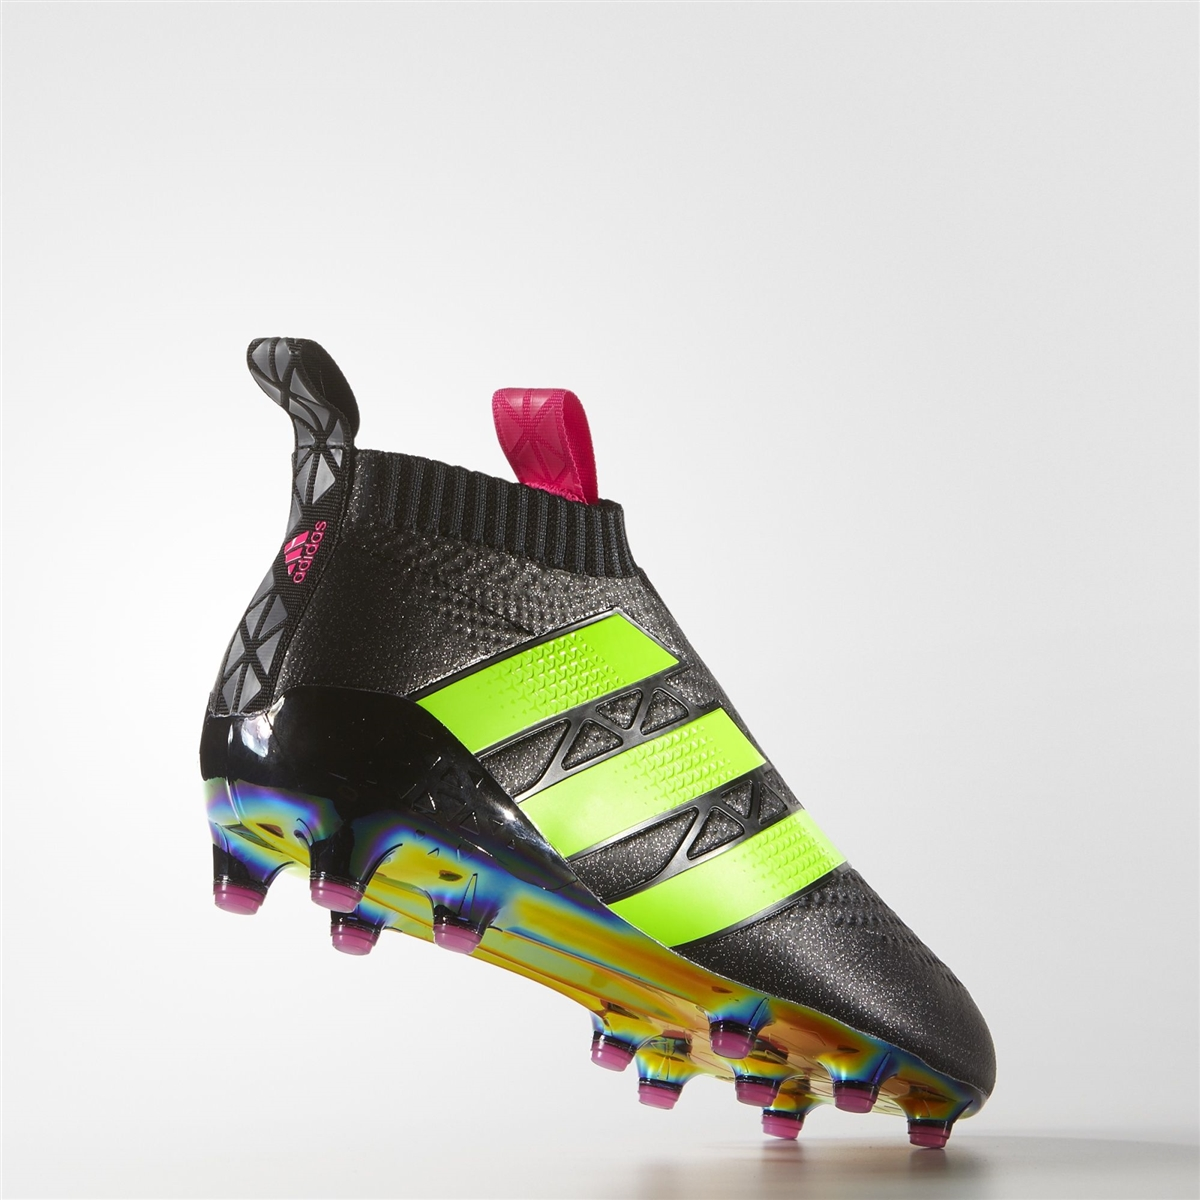 Adidas Ace 16 Purecontrol Black